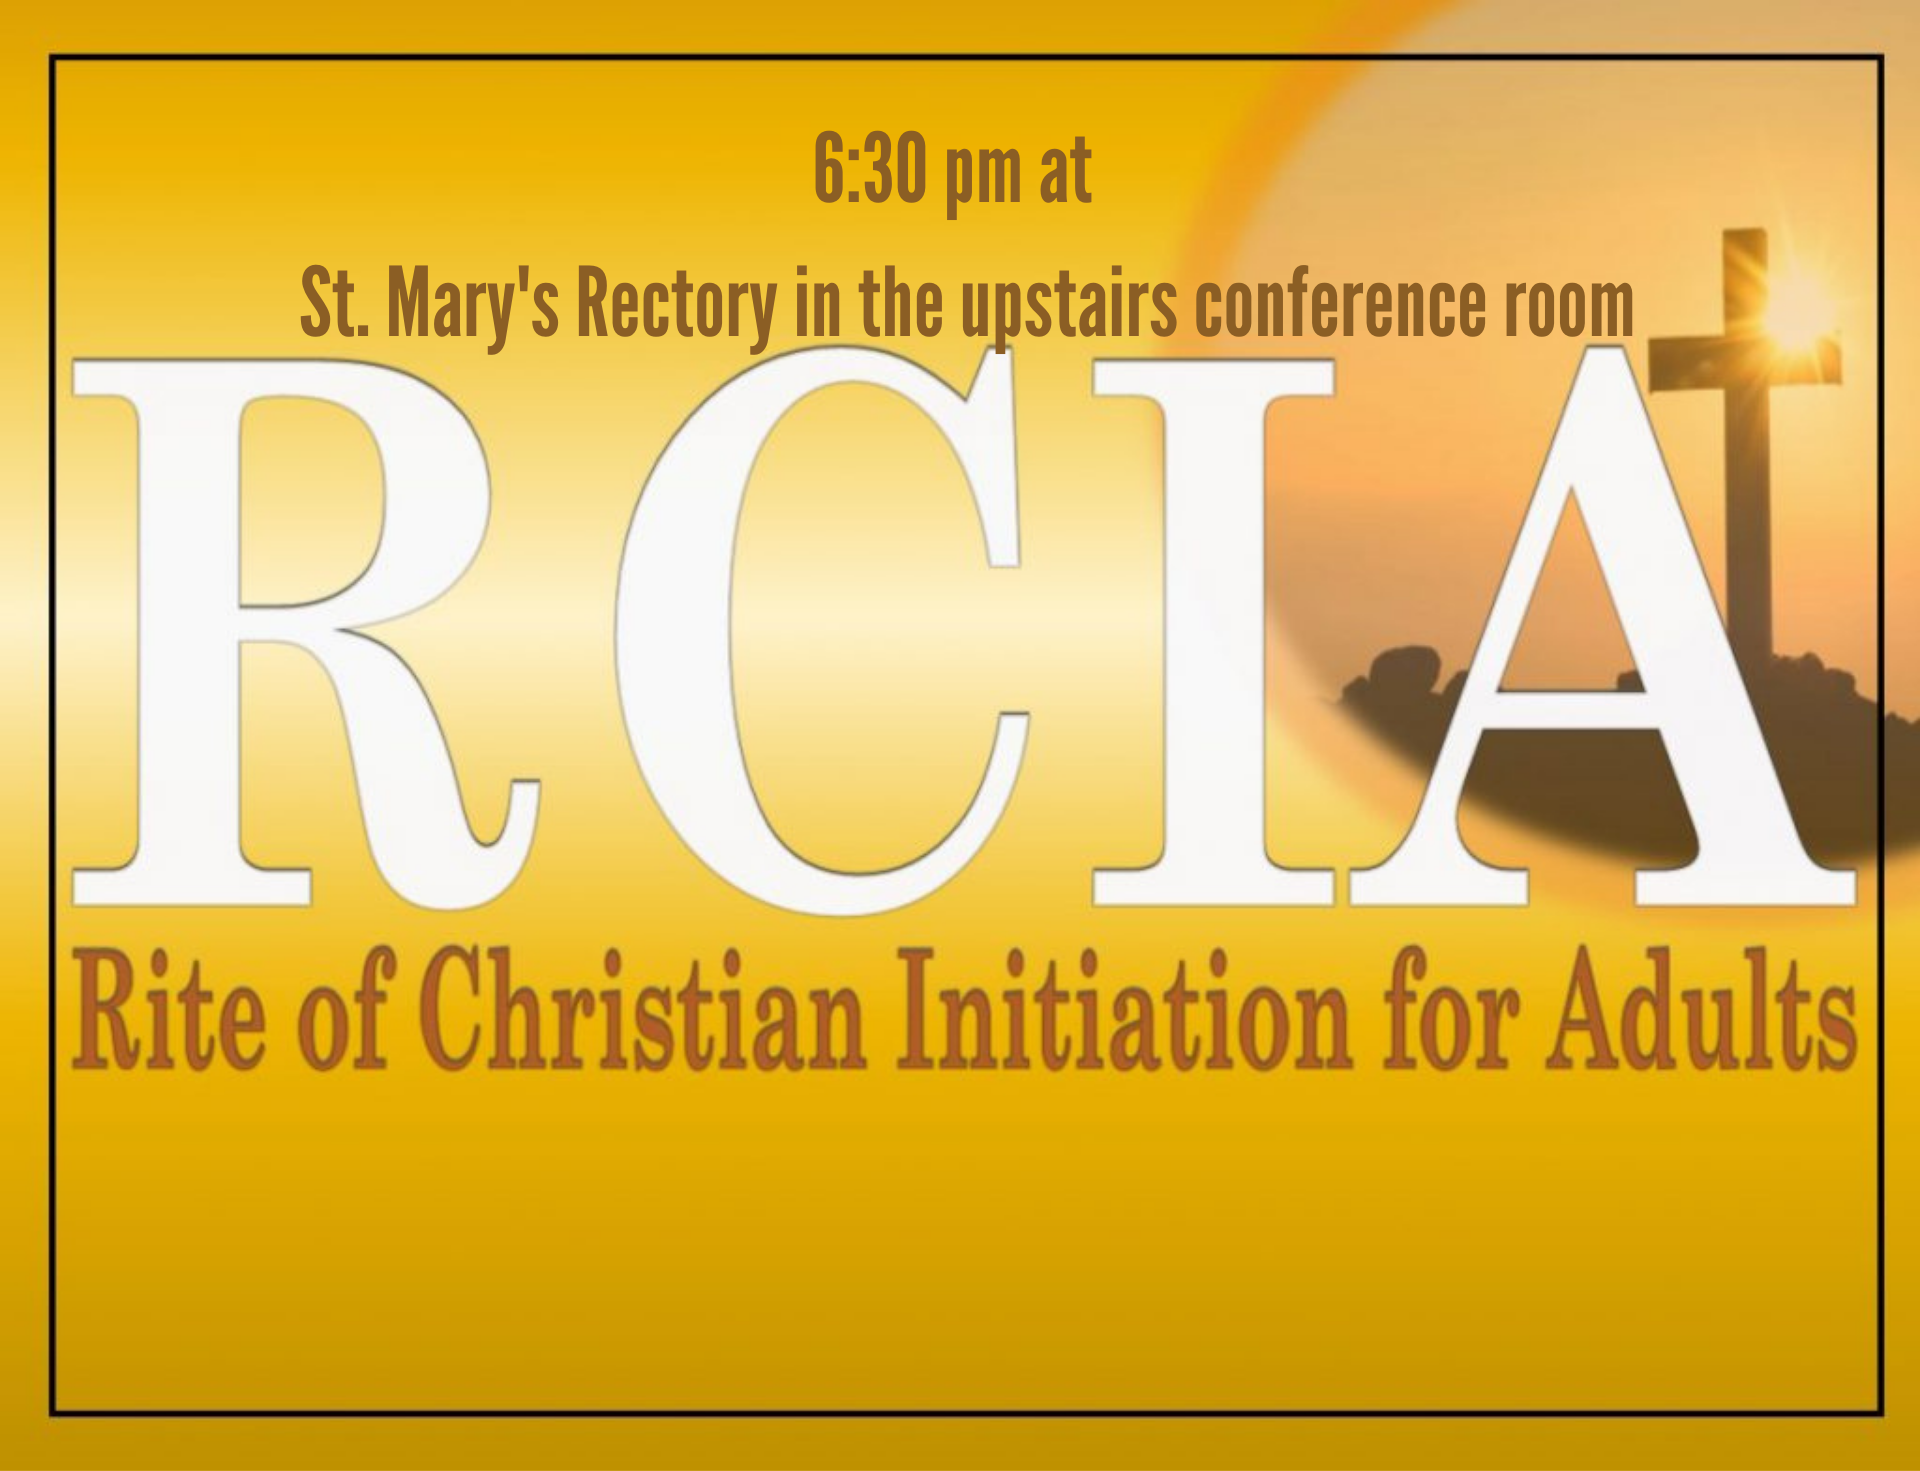 6:30 pm R.C.I.A - Upstairs conference room